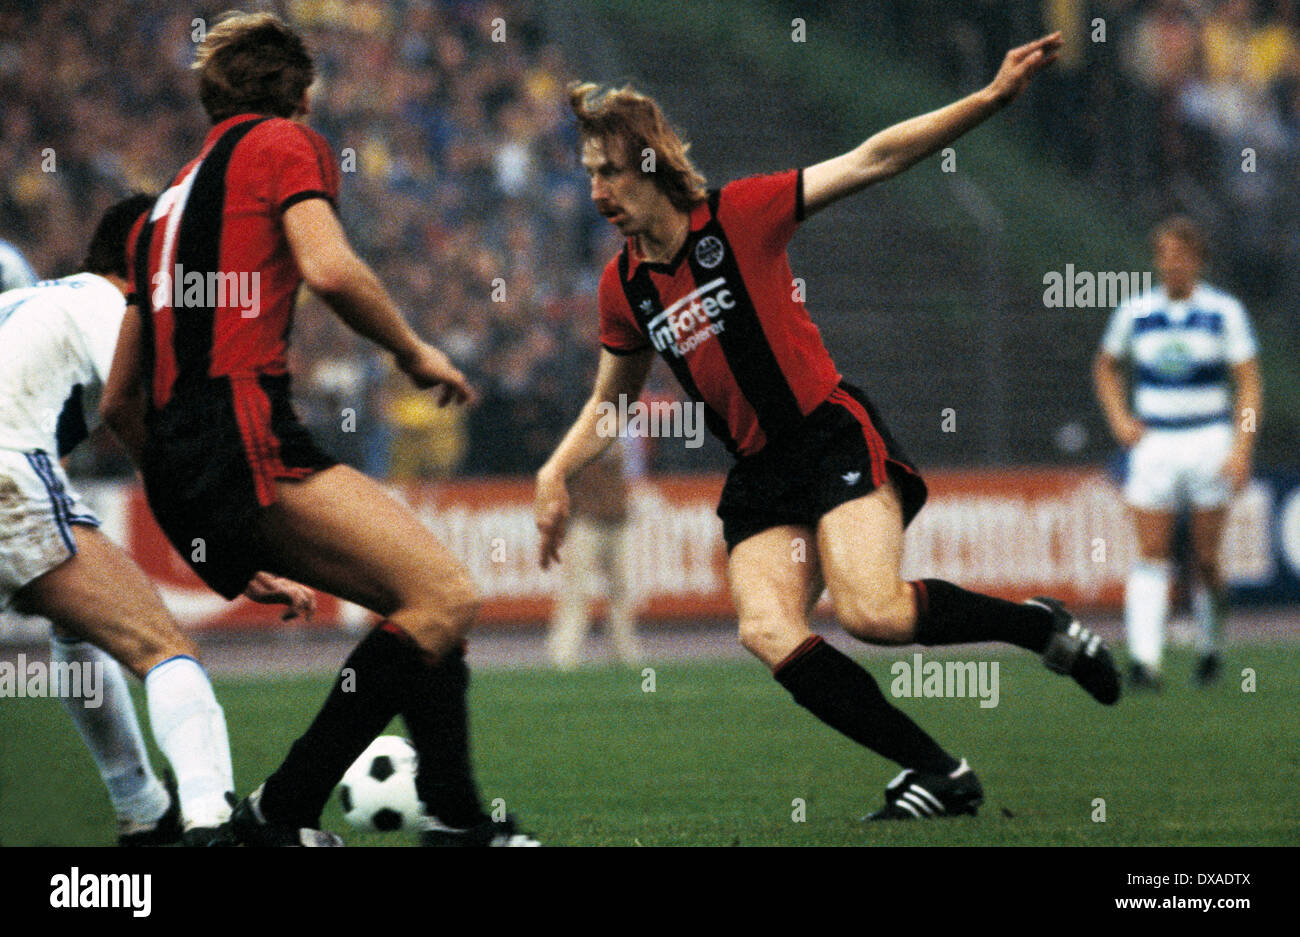 football, 1. Bundesliga, 2. Bundesliga, 1983/1984, relegation match to Bundesliga 1984/1985, first leg, Wedau Stadium, MSV Duisburg versus Eintracht Frankfurt 0:5, scene of the match, Juergen Mohr (Frankfurt) - Stock Image